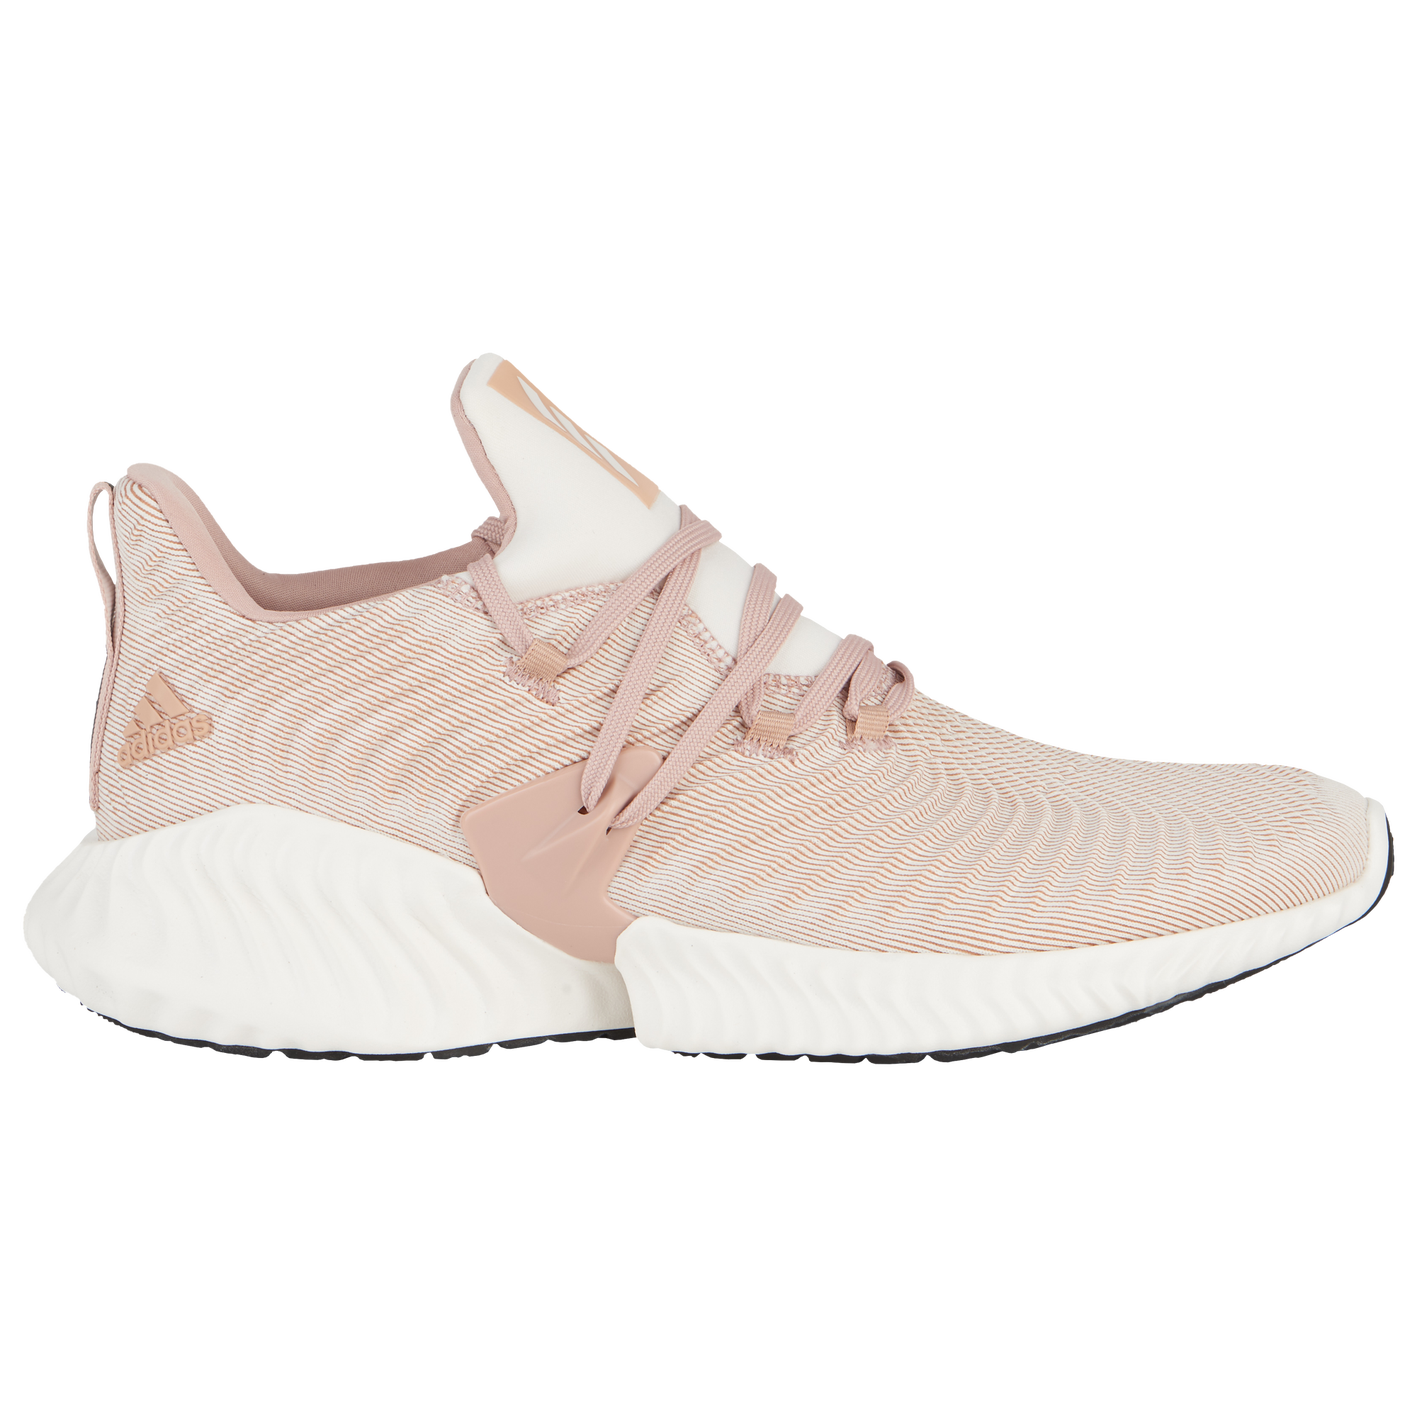 0387ed934 adidas Alphabounce Instinct - Men s.  69.99 -  104.99. Product    D96806.  Selected Style  Ash Pearl Chalk White Clear Brown ...